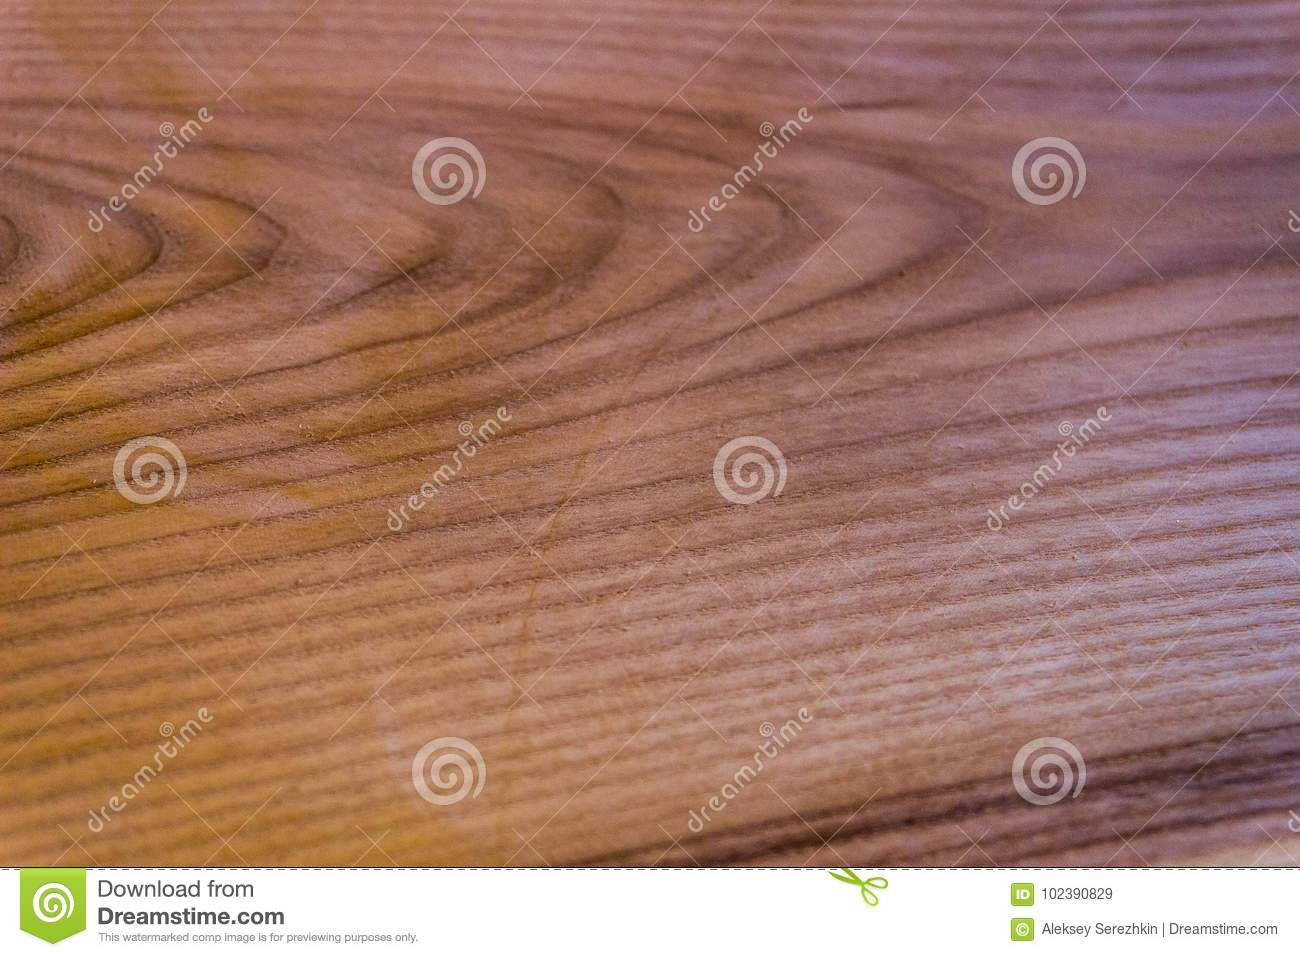 Texture of an oak tree, background